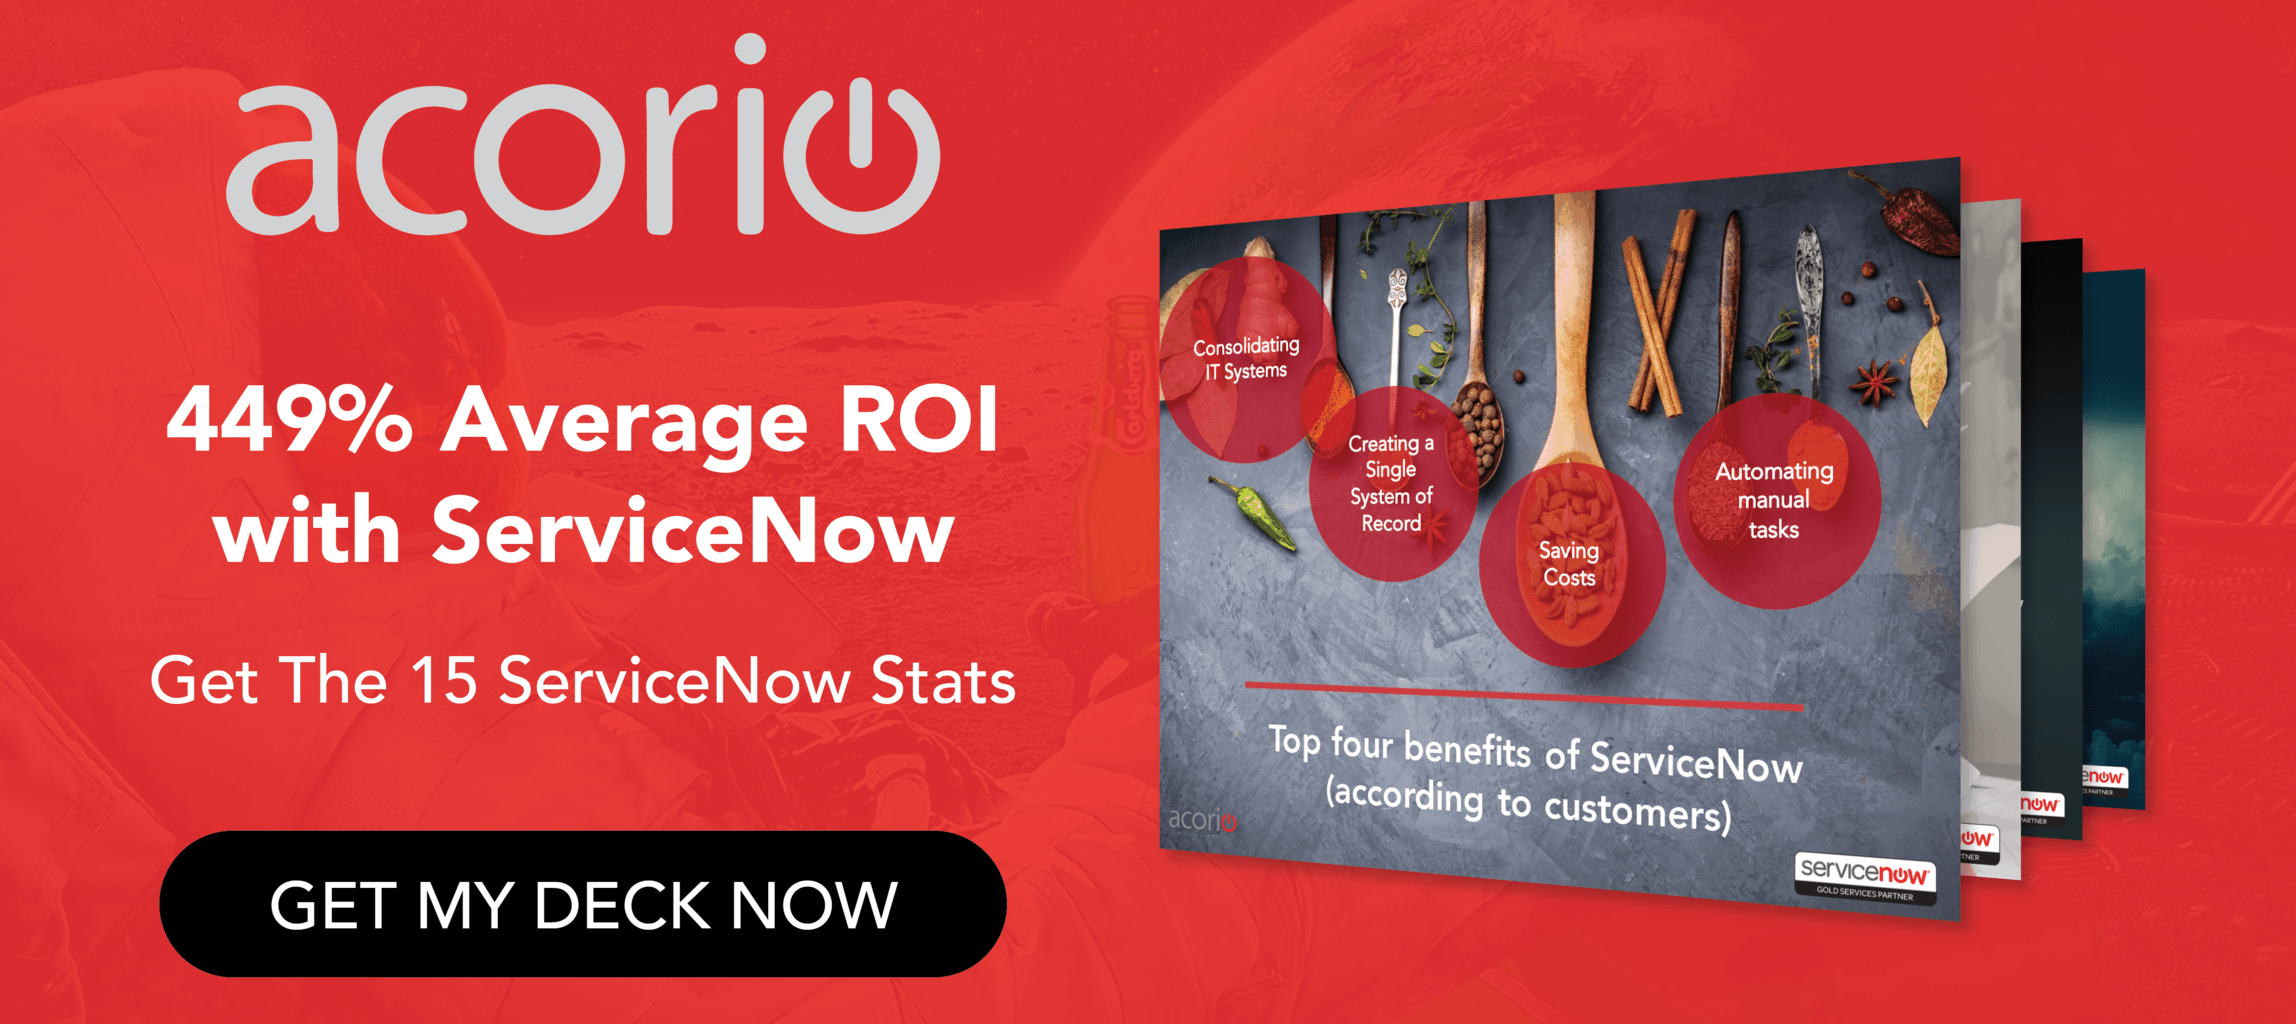 ServiceNow ROI Slides Download Now